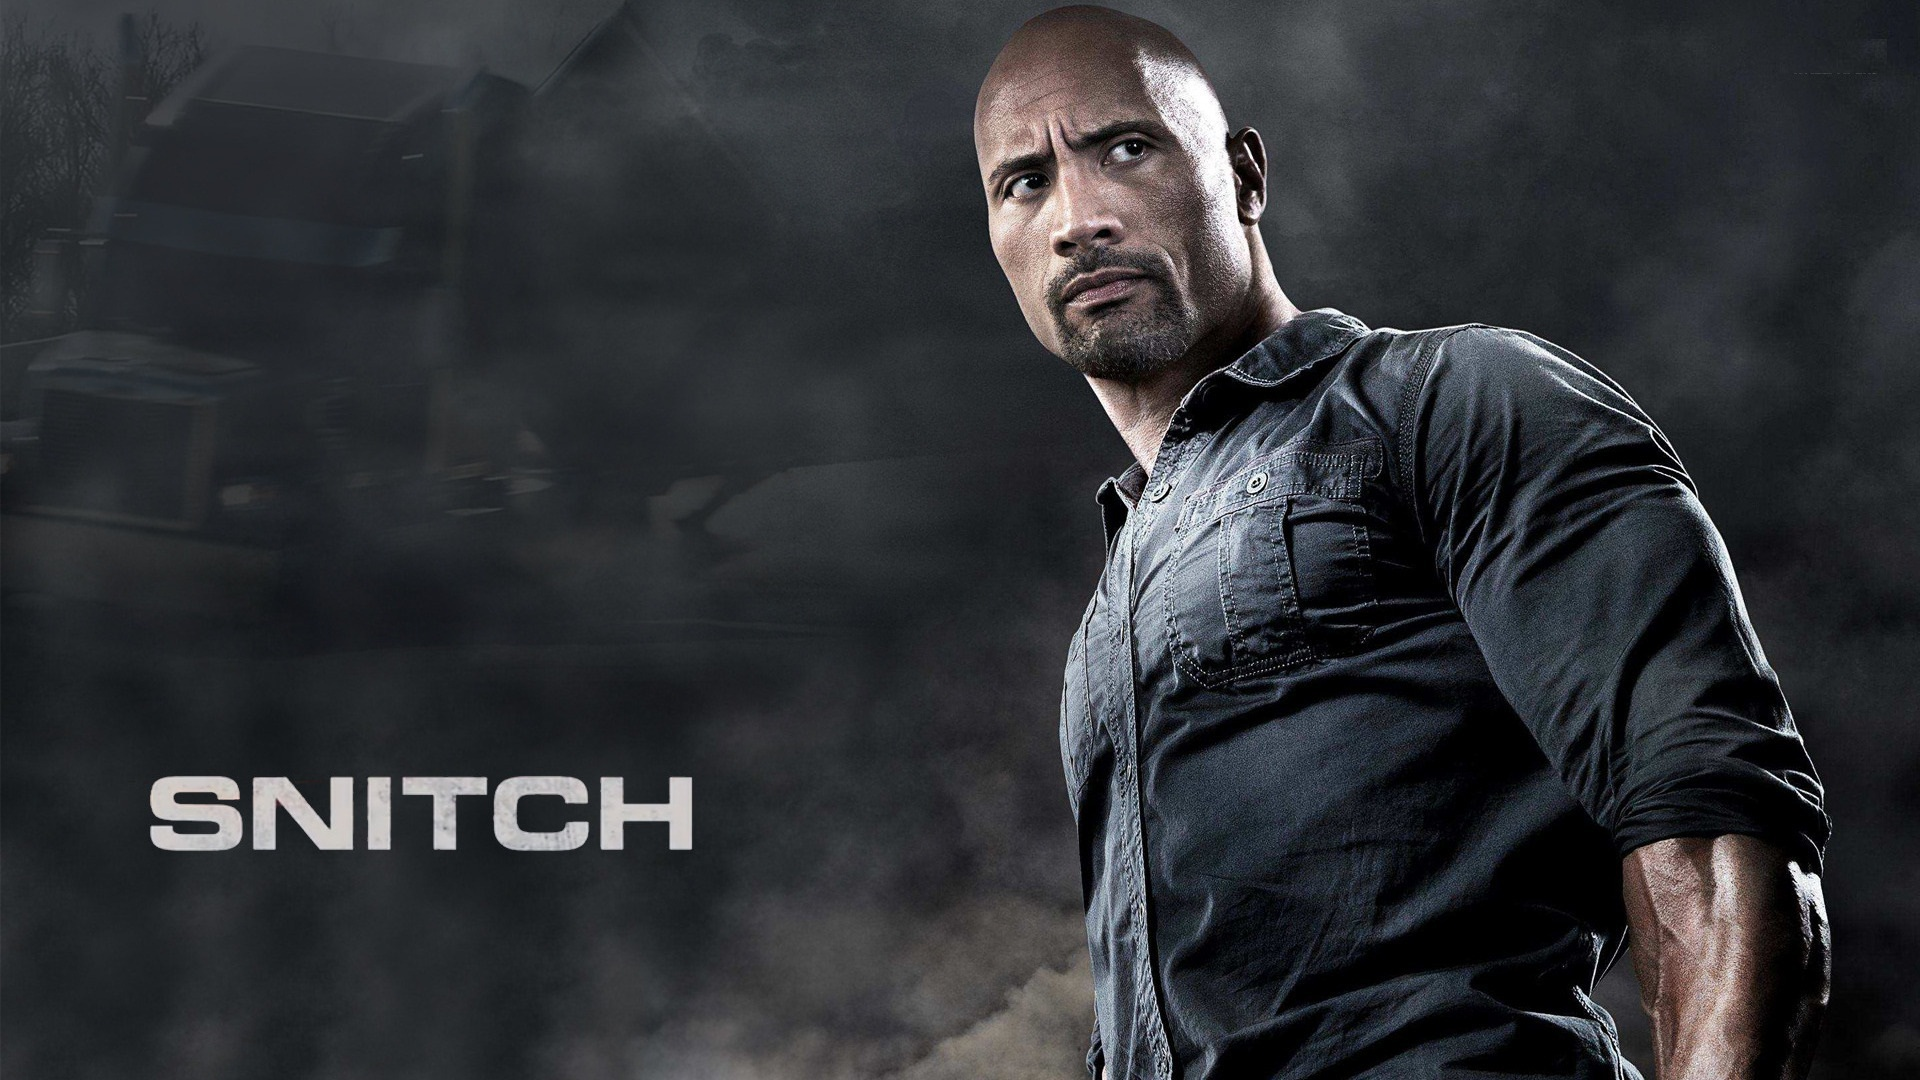 Actor Wallpaper Image Group 40 1920x1080